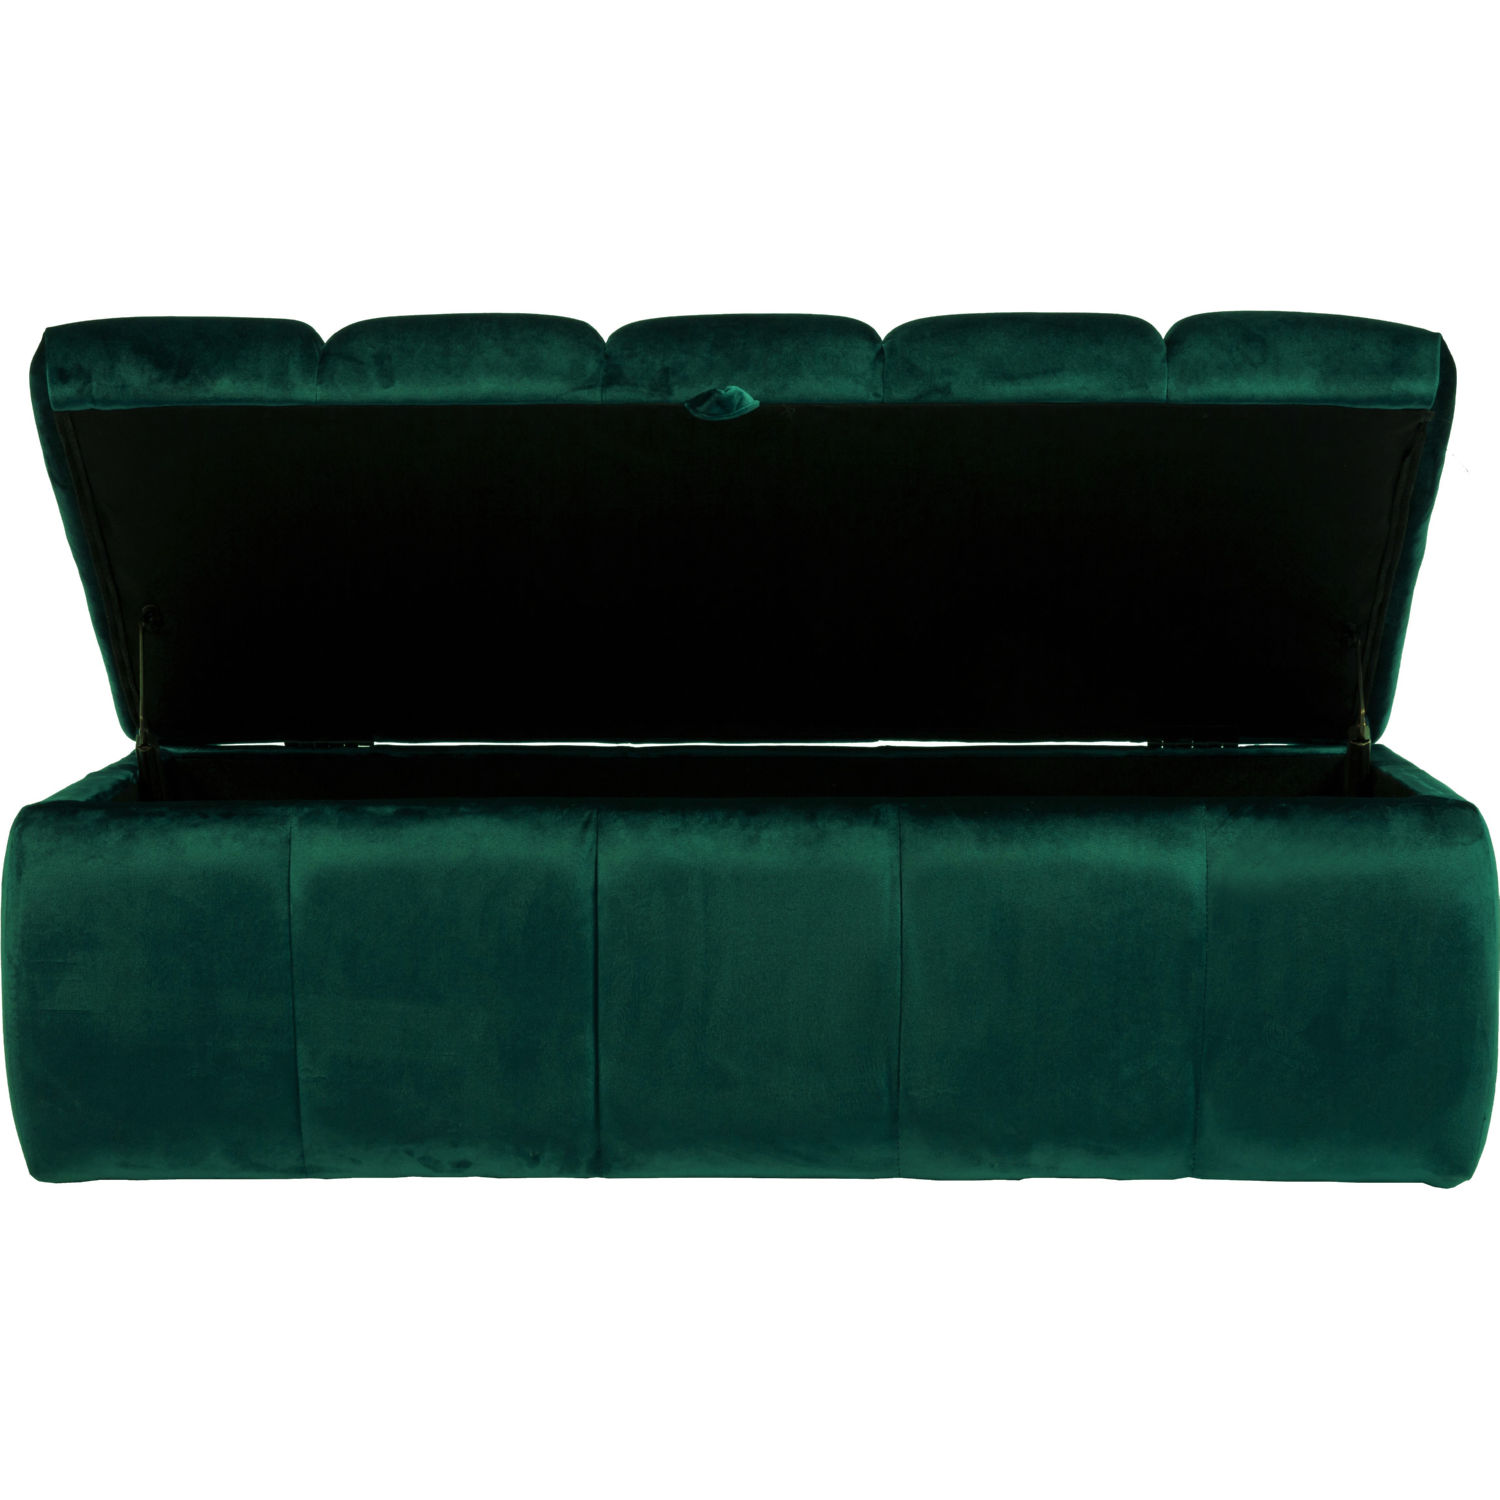 Chic Iconic Fon2791 Dr Chagit Storage Bench Ottoman In Tufted Green Velvet